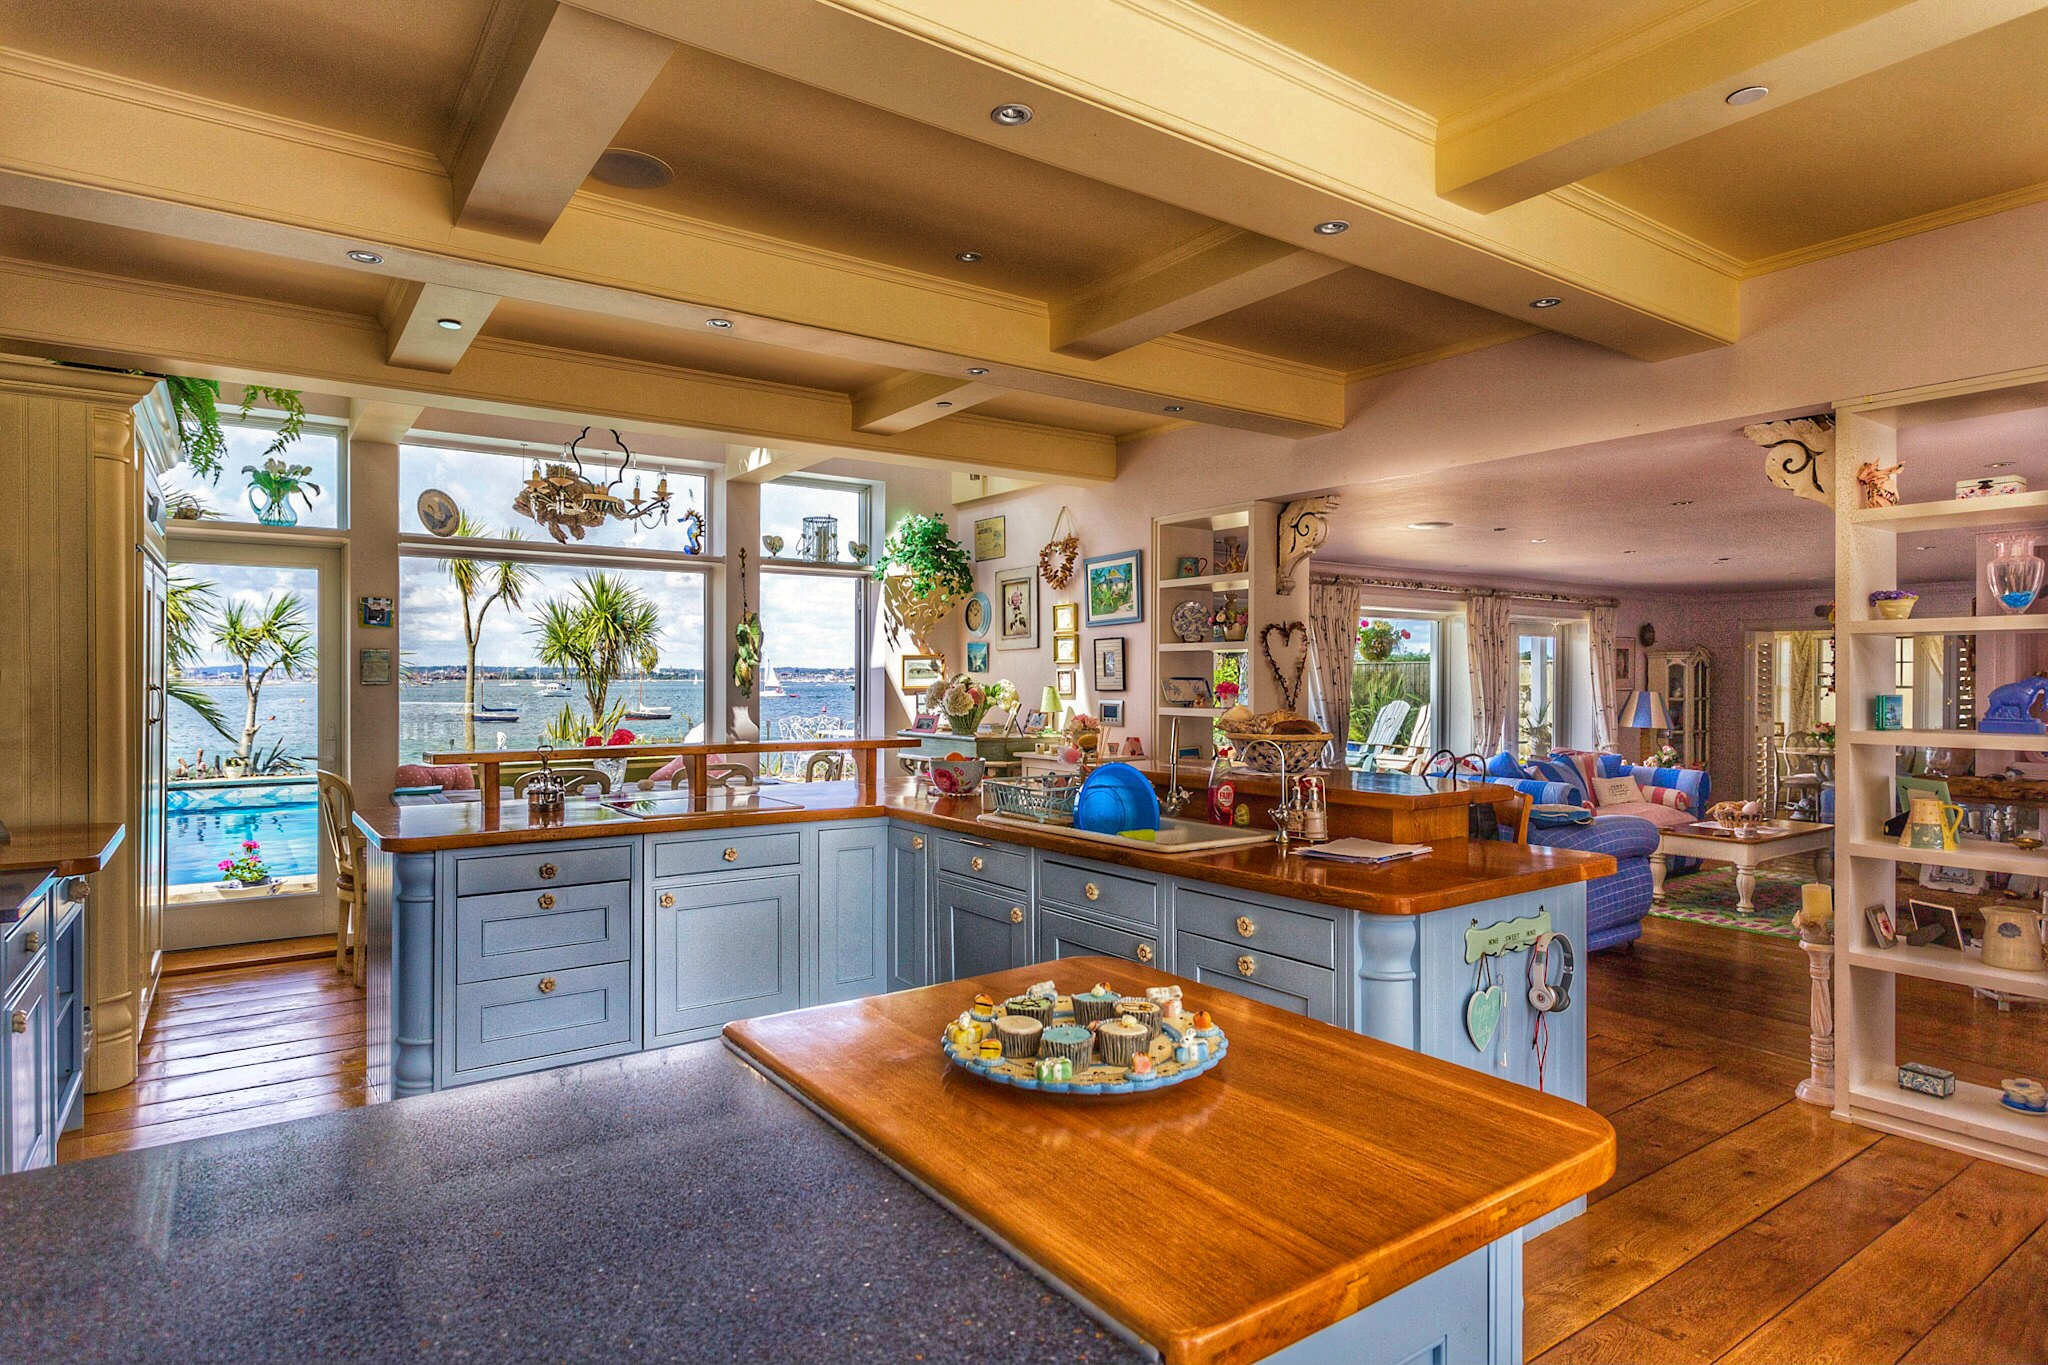 Kitechn by Rick McEvoy interior photographer in Sandbanks